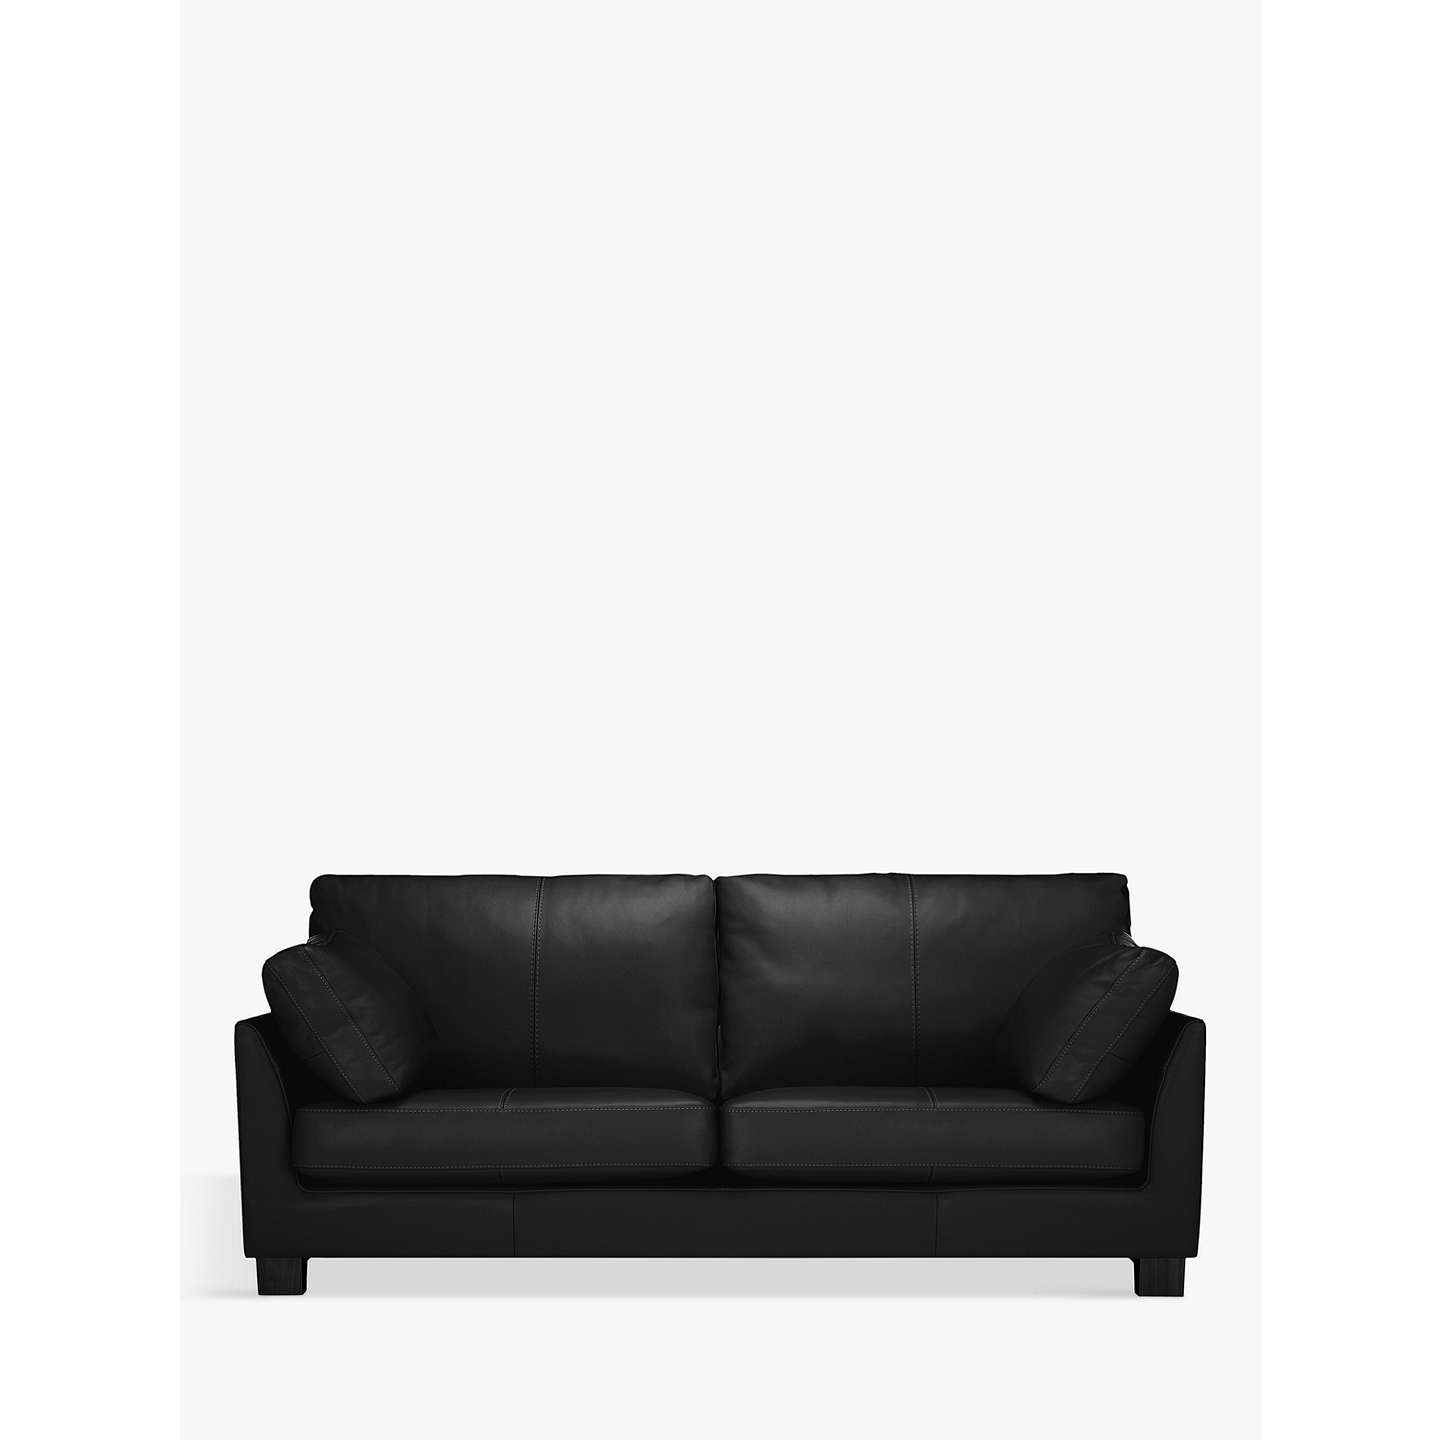 Grand leather sofa burlington grand leather sofa thomas for Leather sofa 7 seater